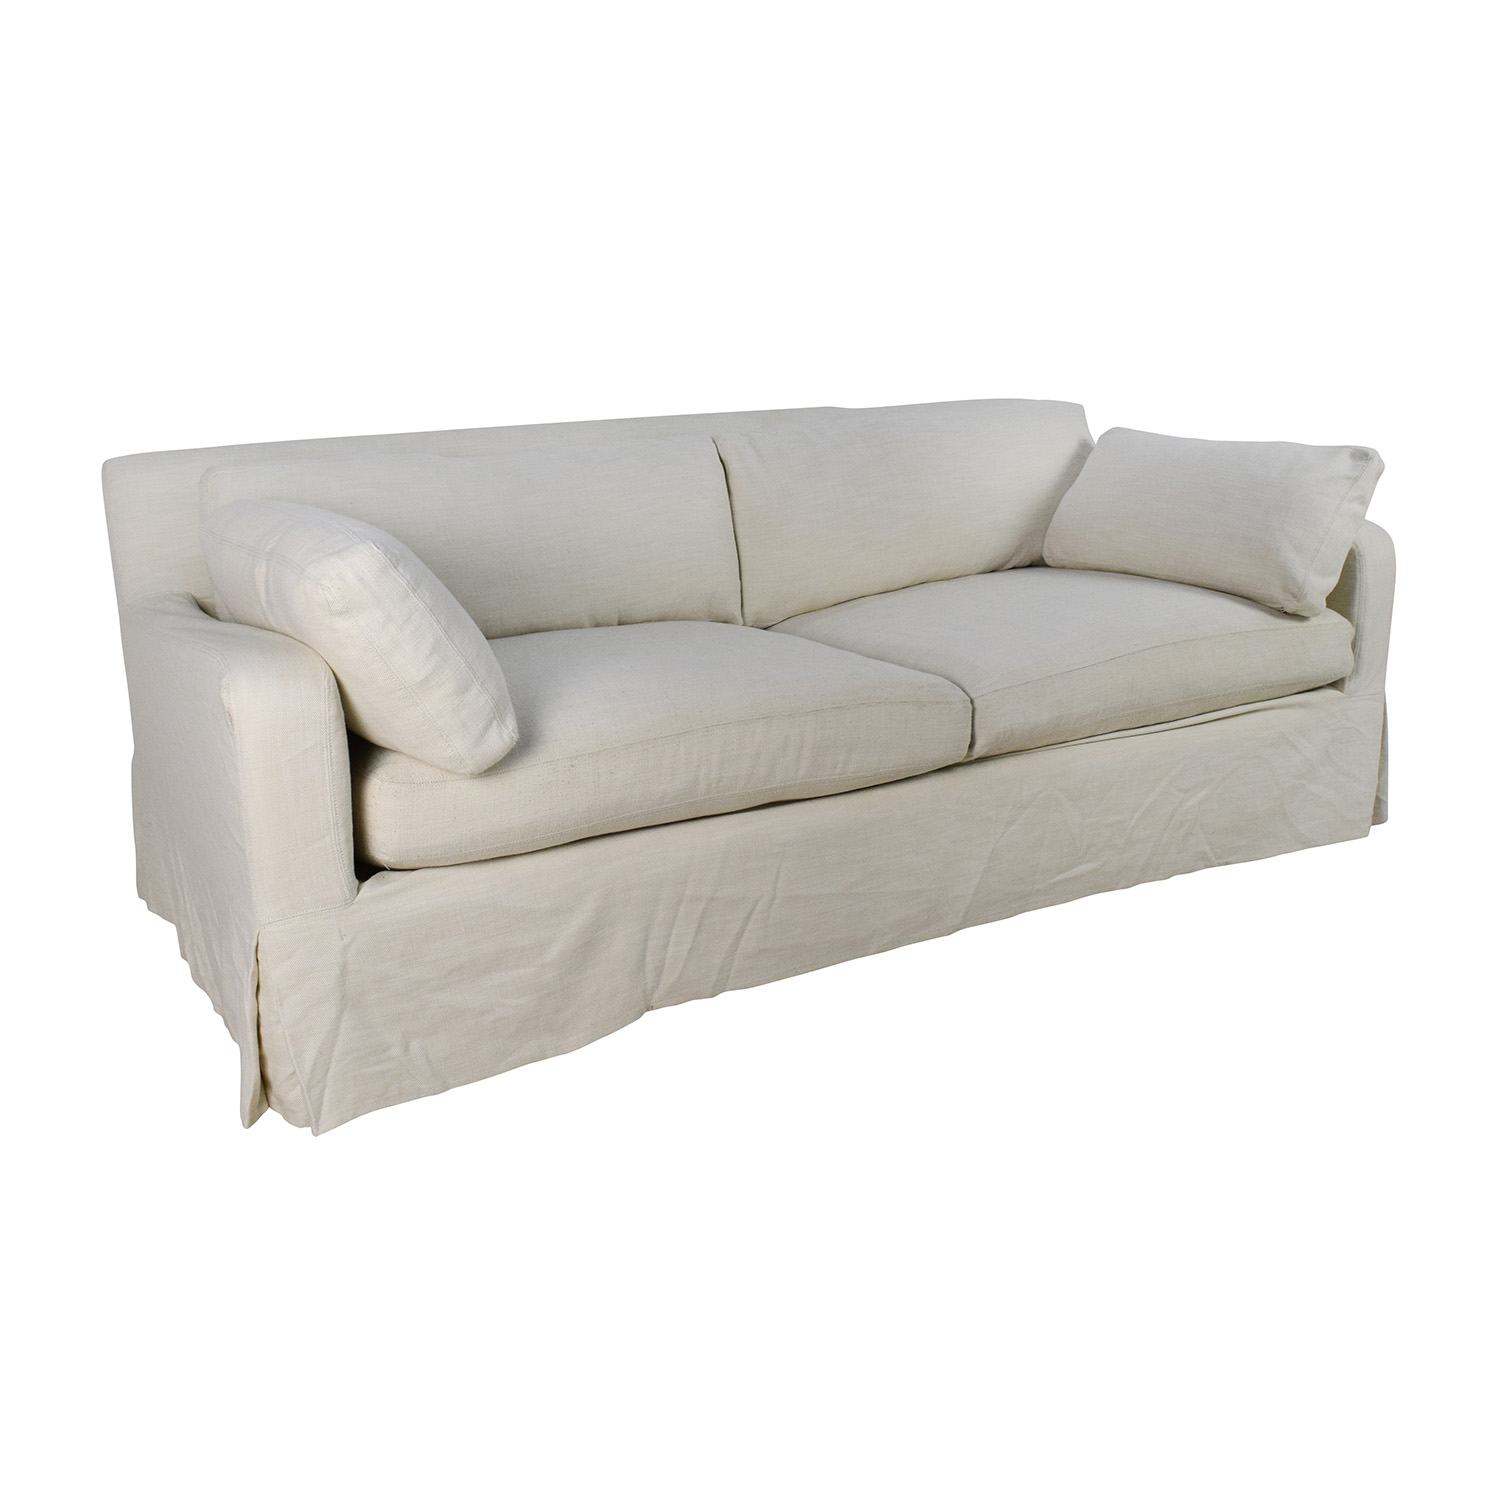 ... Shop Restoration Hardware Belgian Track Arm Slipcovered Sofa Restoration  Hardware Sofas ... Part 50